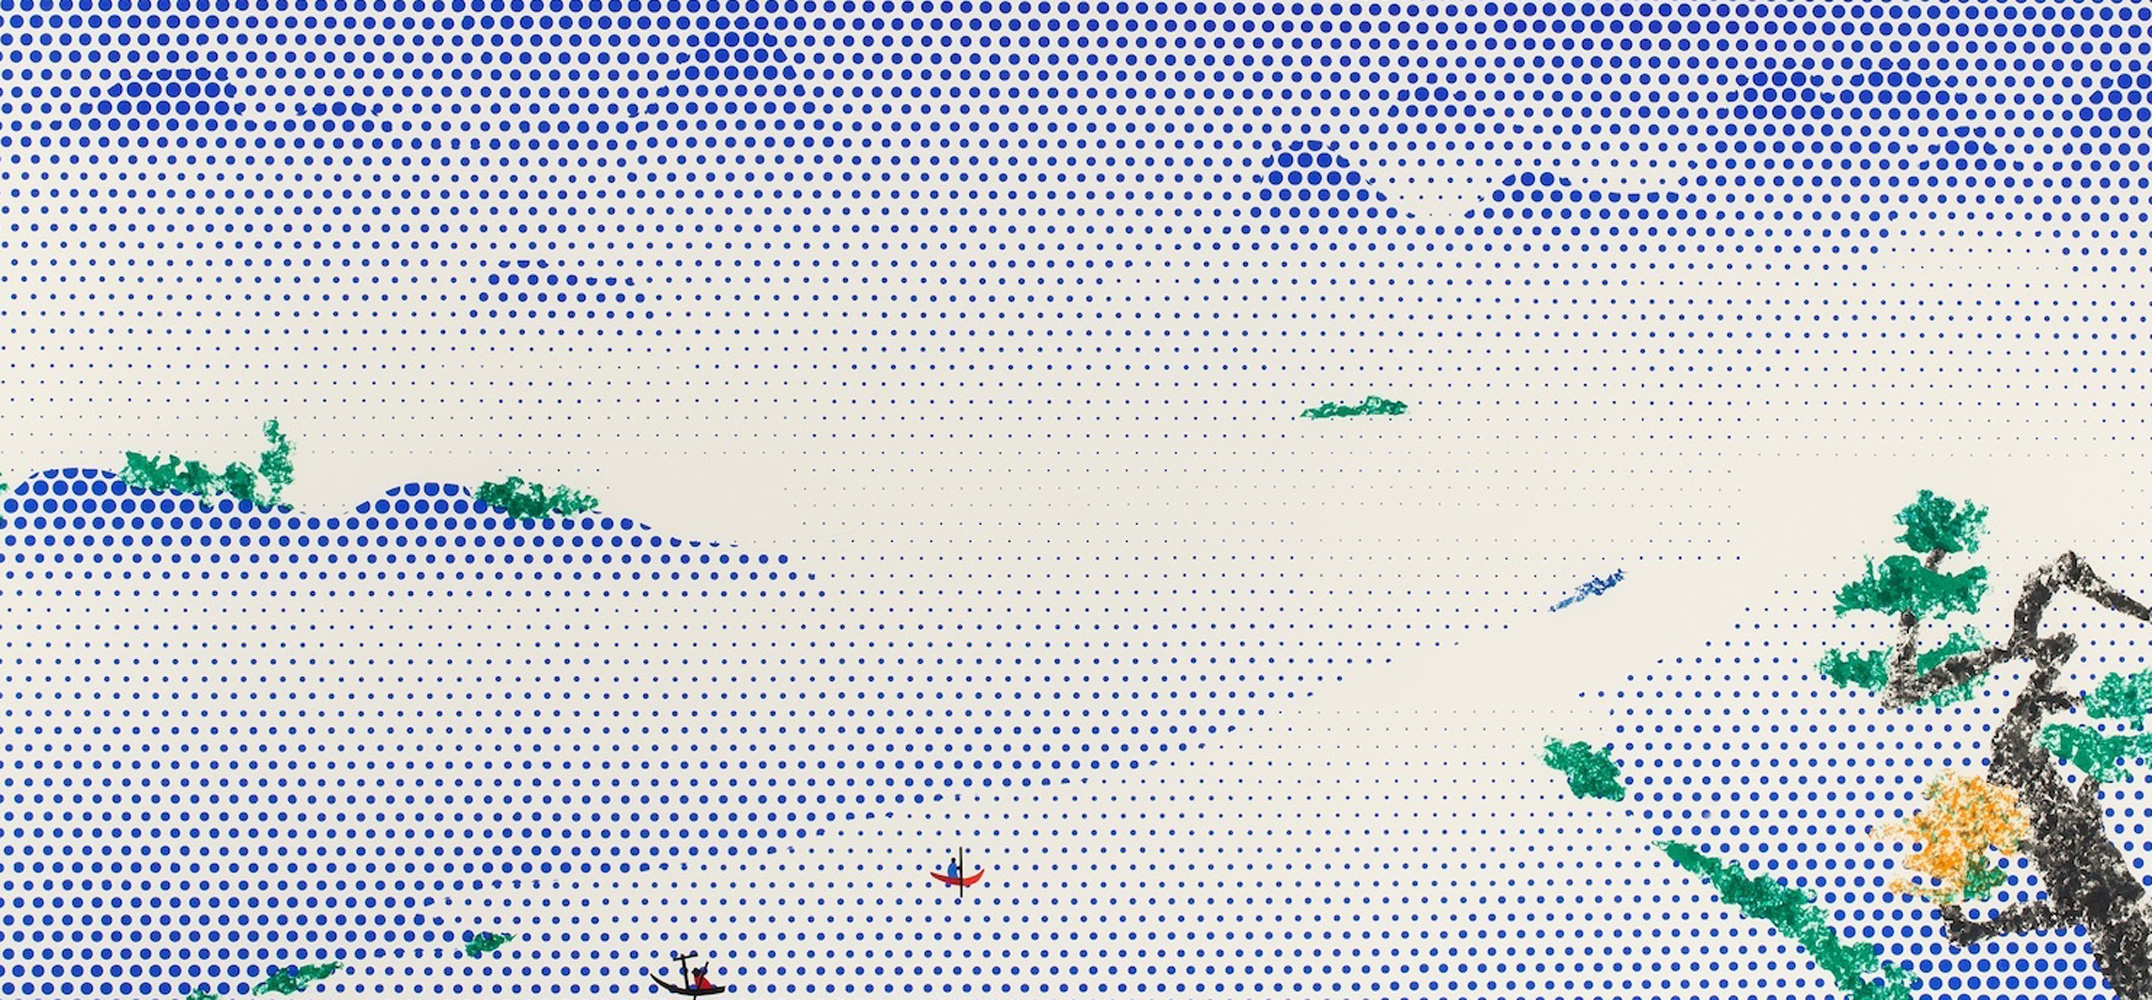 Landscape With Boats 1966 by Roy Lichtenstein